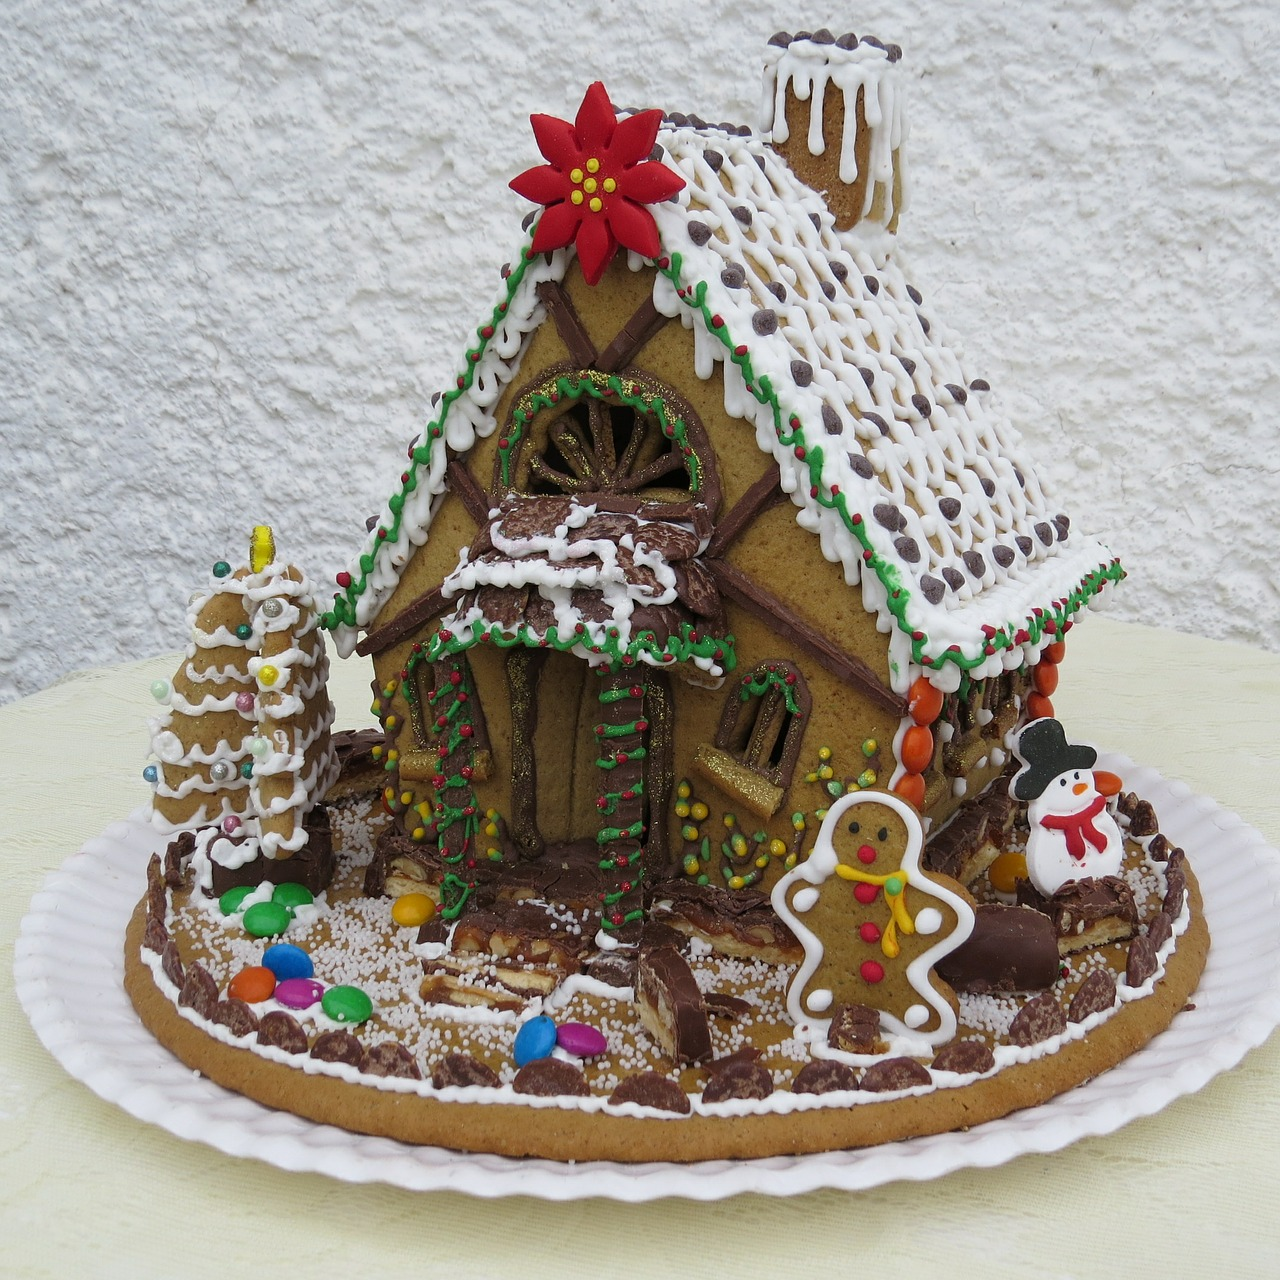 Gingerbread House & Creative DIY Candy Decorations And Gingerbread Houses To Make This ...